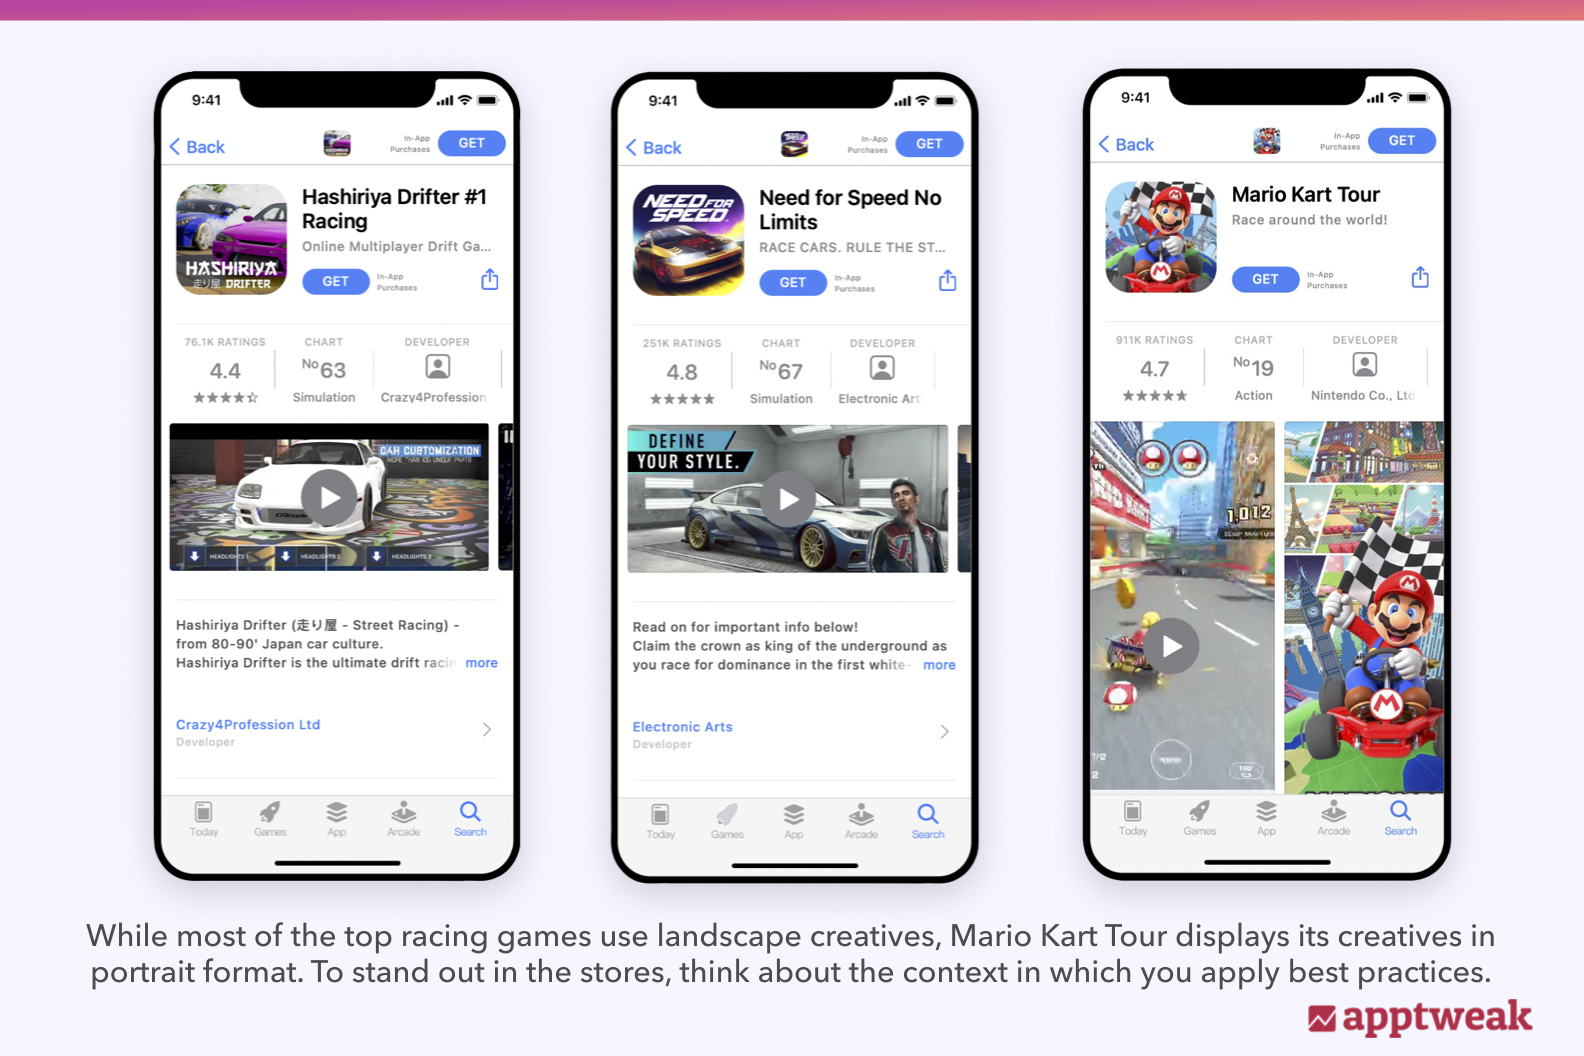 While most of the top racing games use landscape creatives, Mario Kart Tour displays its creatives in portrait format. To stand out in the stores, think about the context in which you apply best practices.